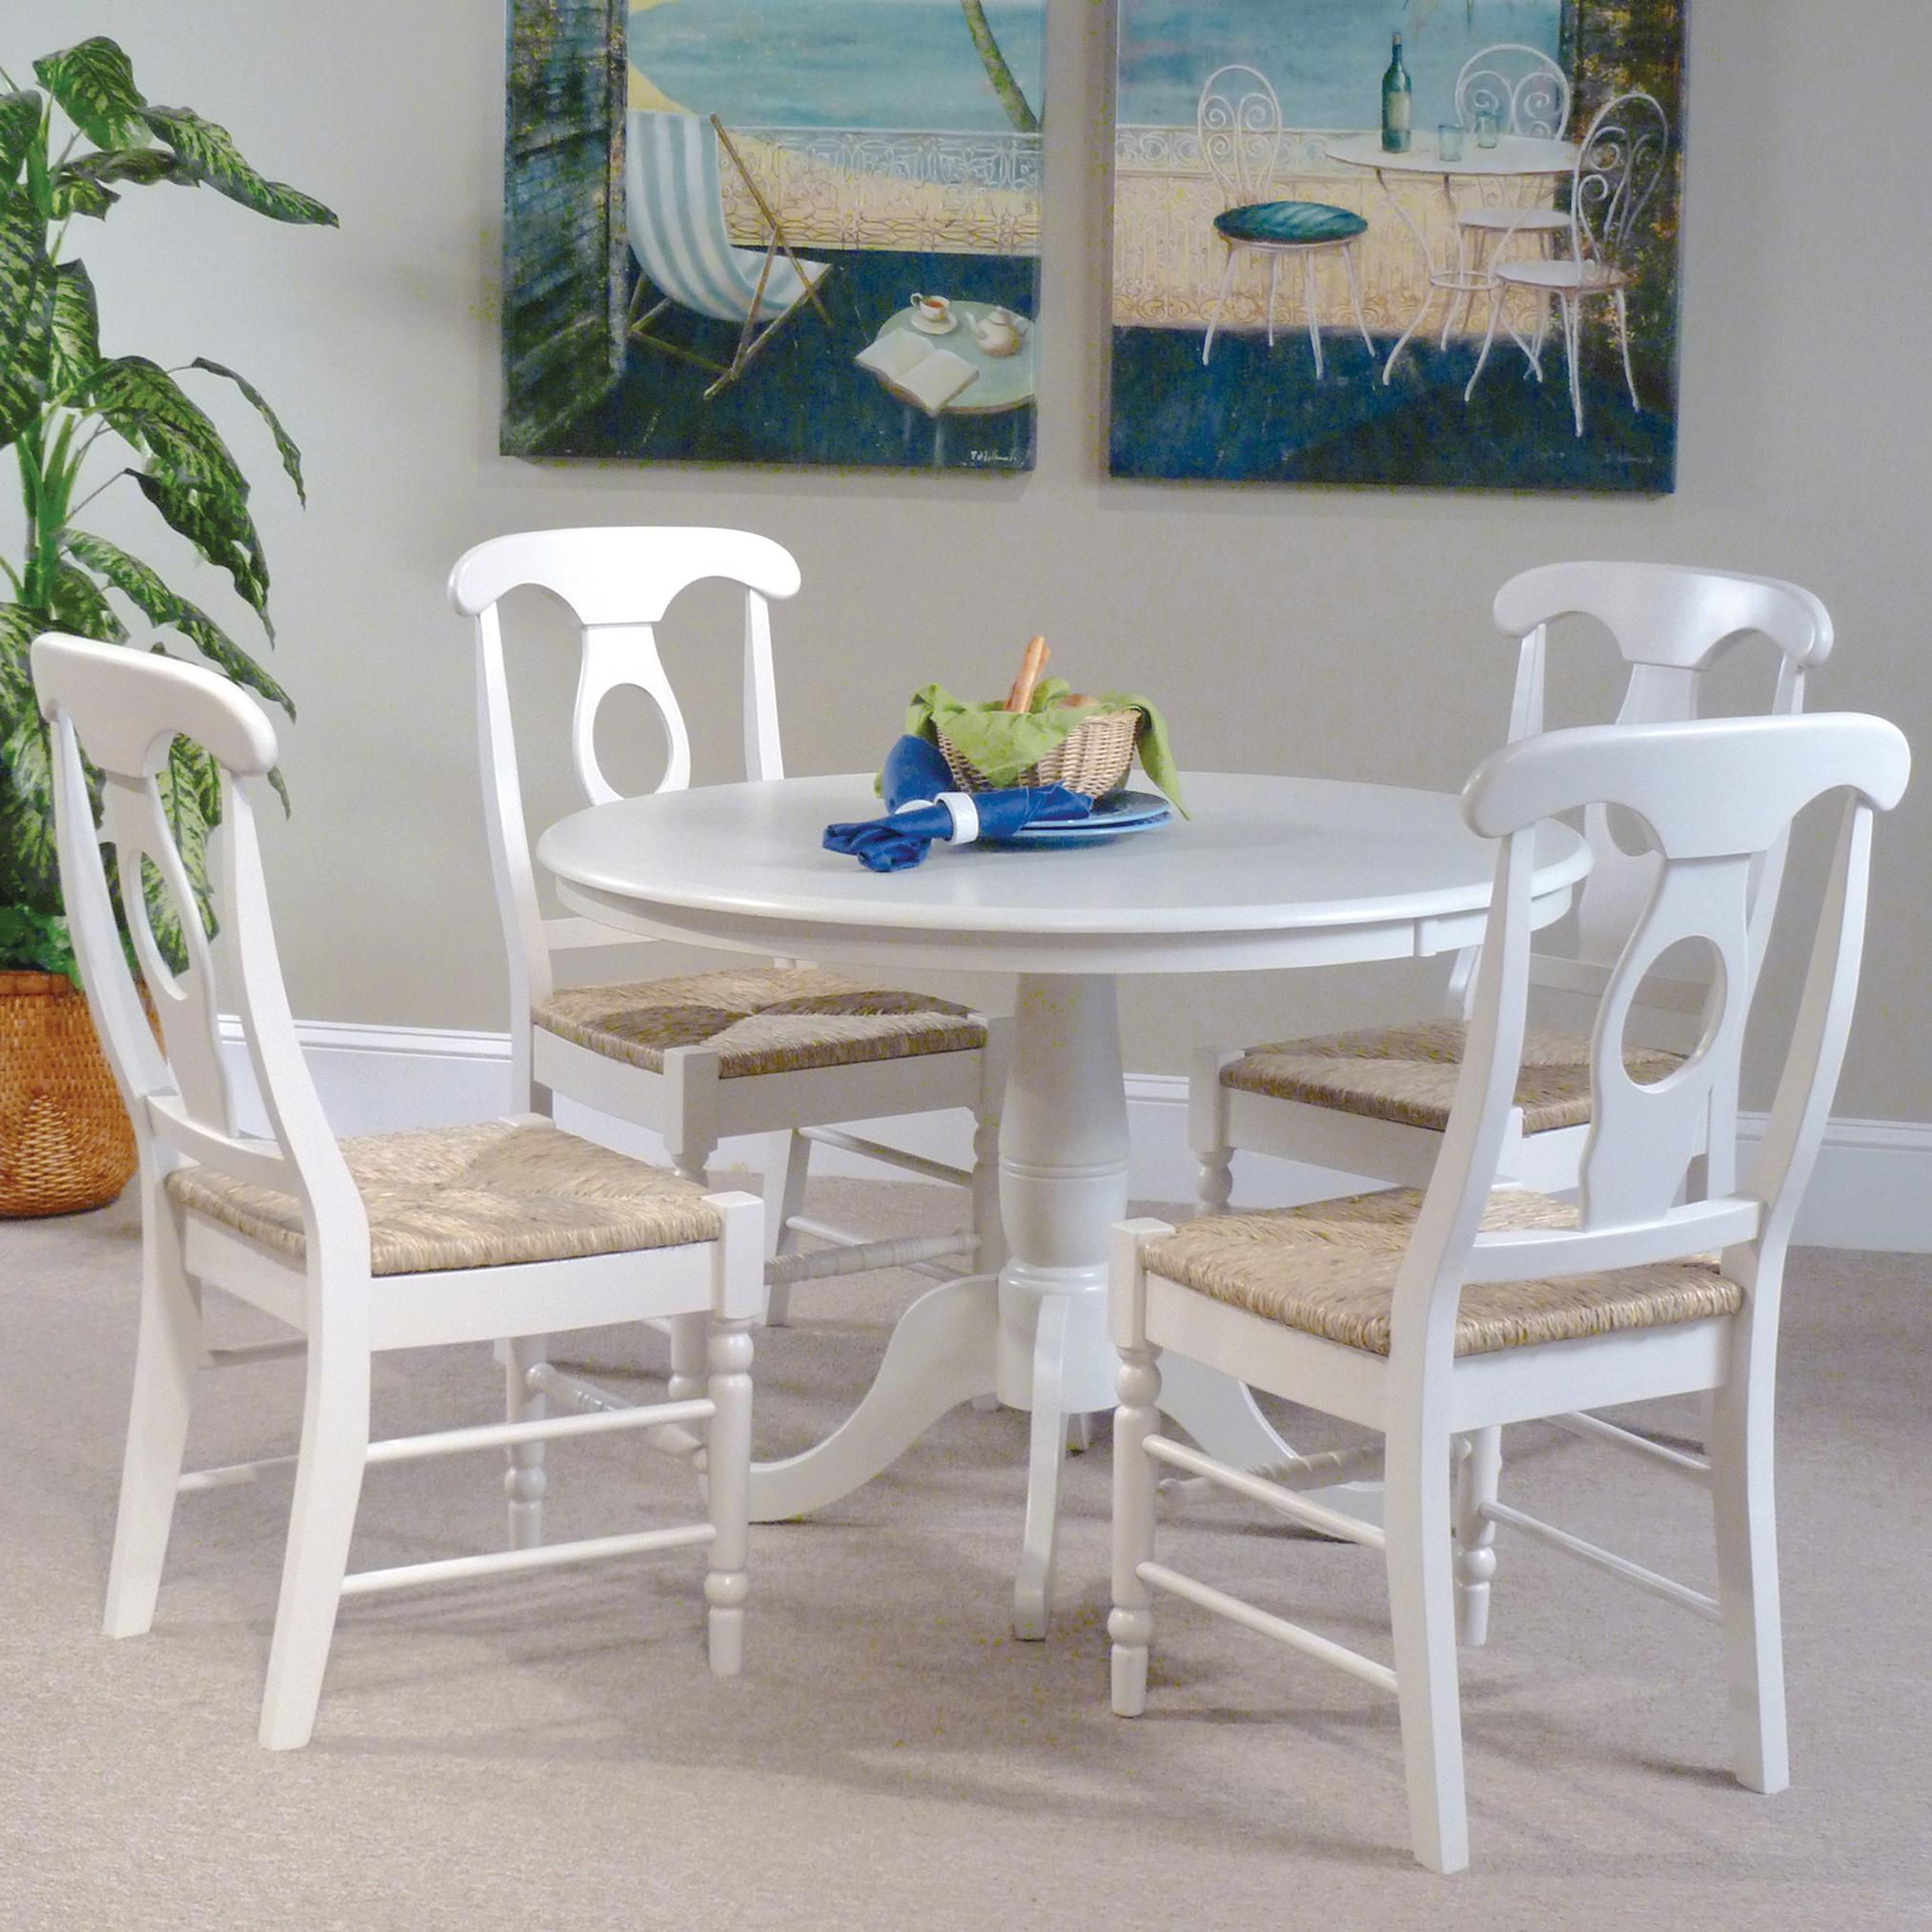 John Thomas Simply Linen Table and Chair Set - Item Number: T31+4xC31